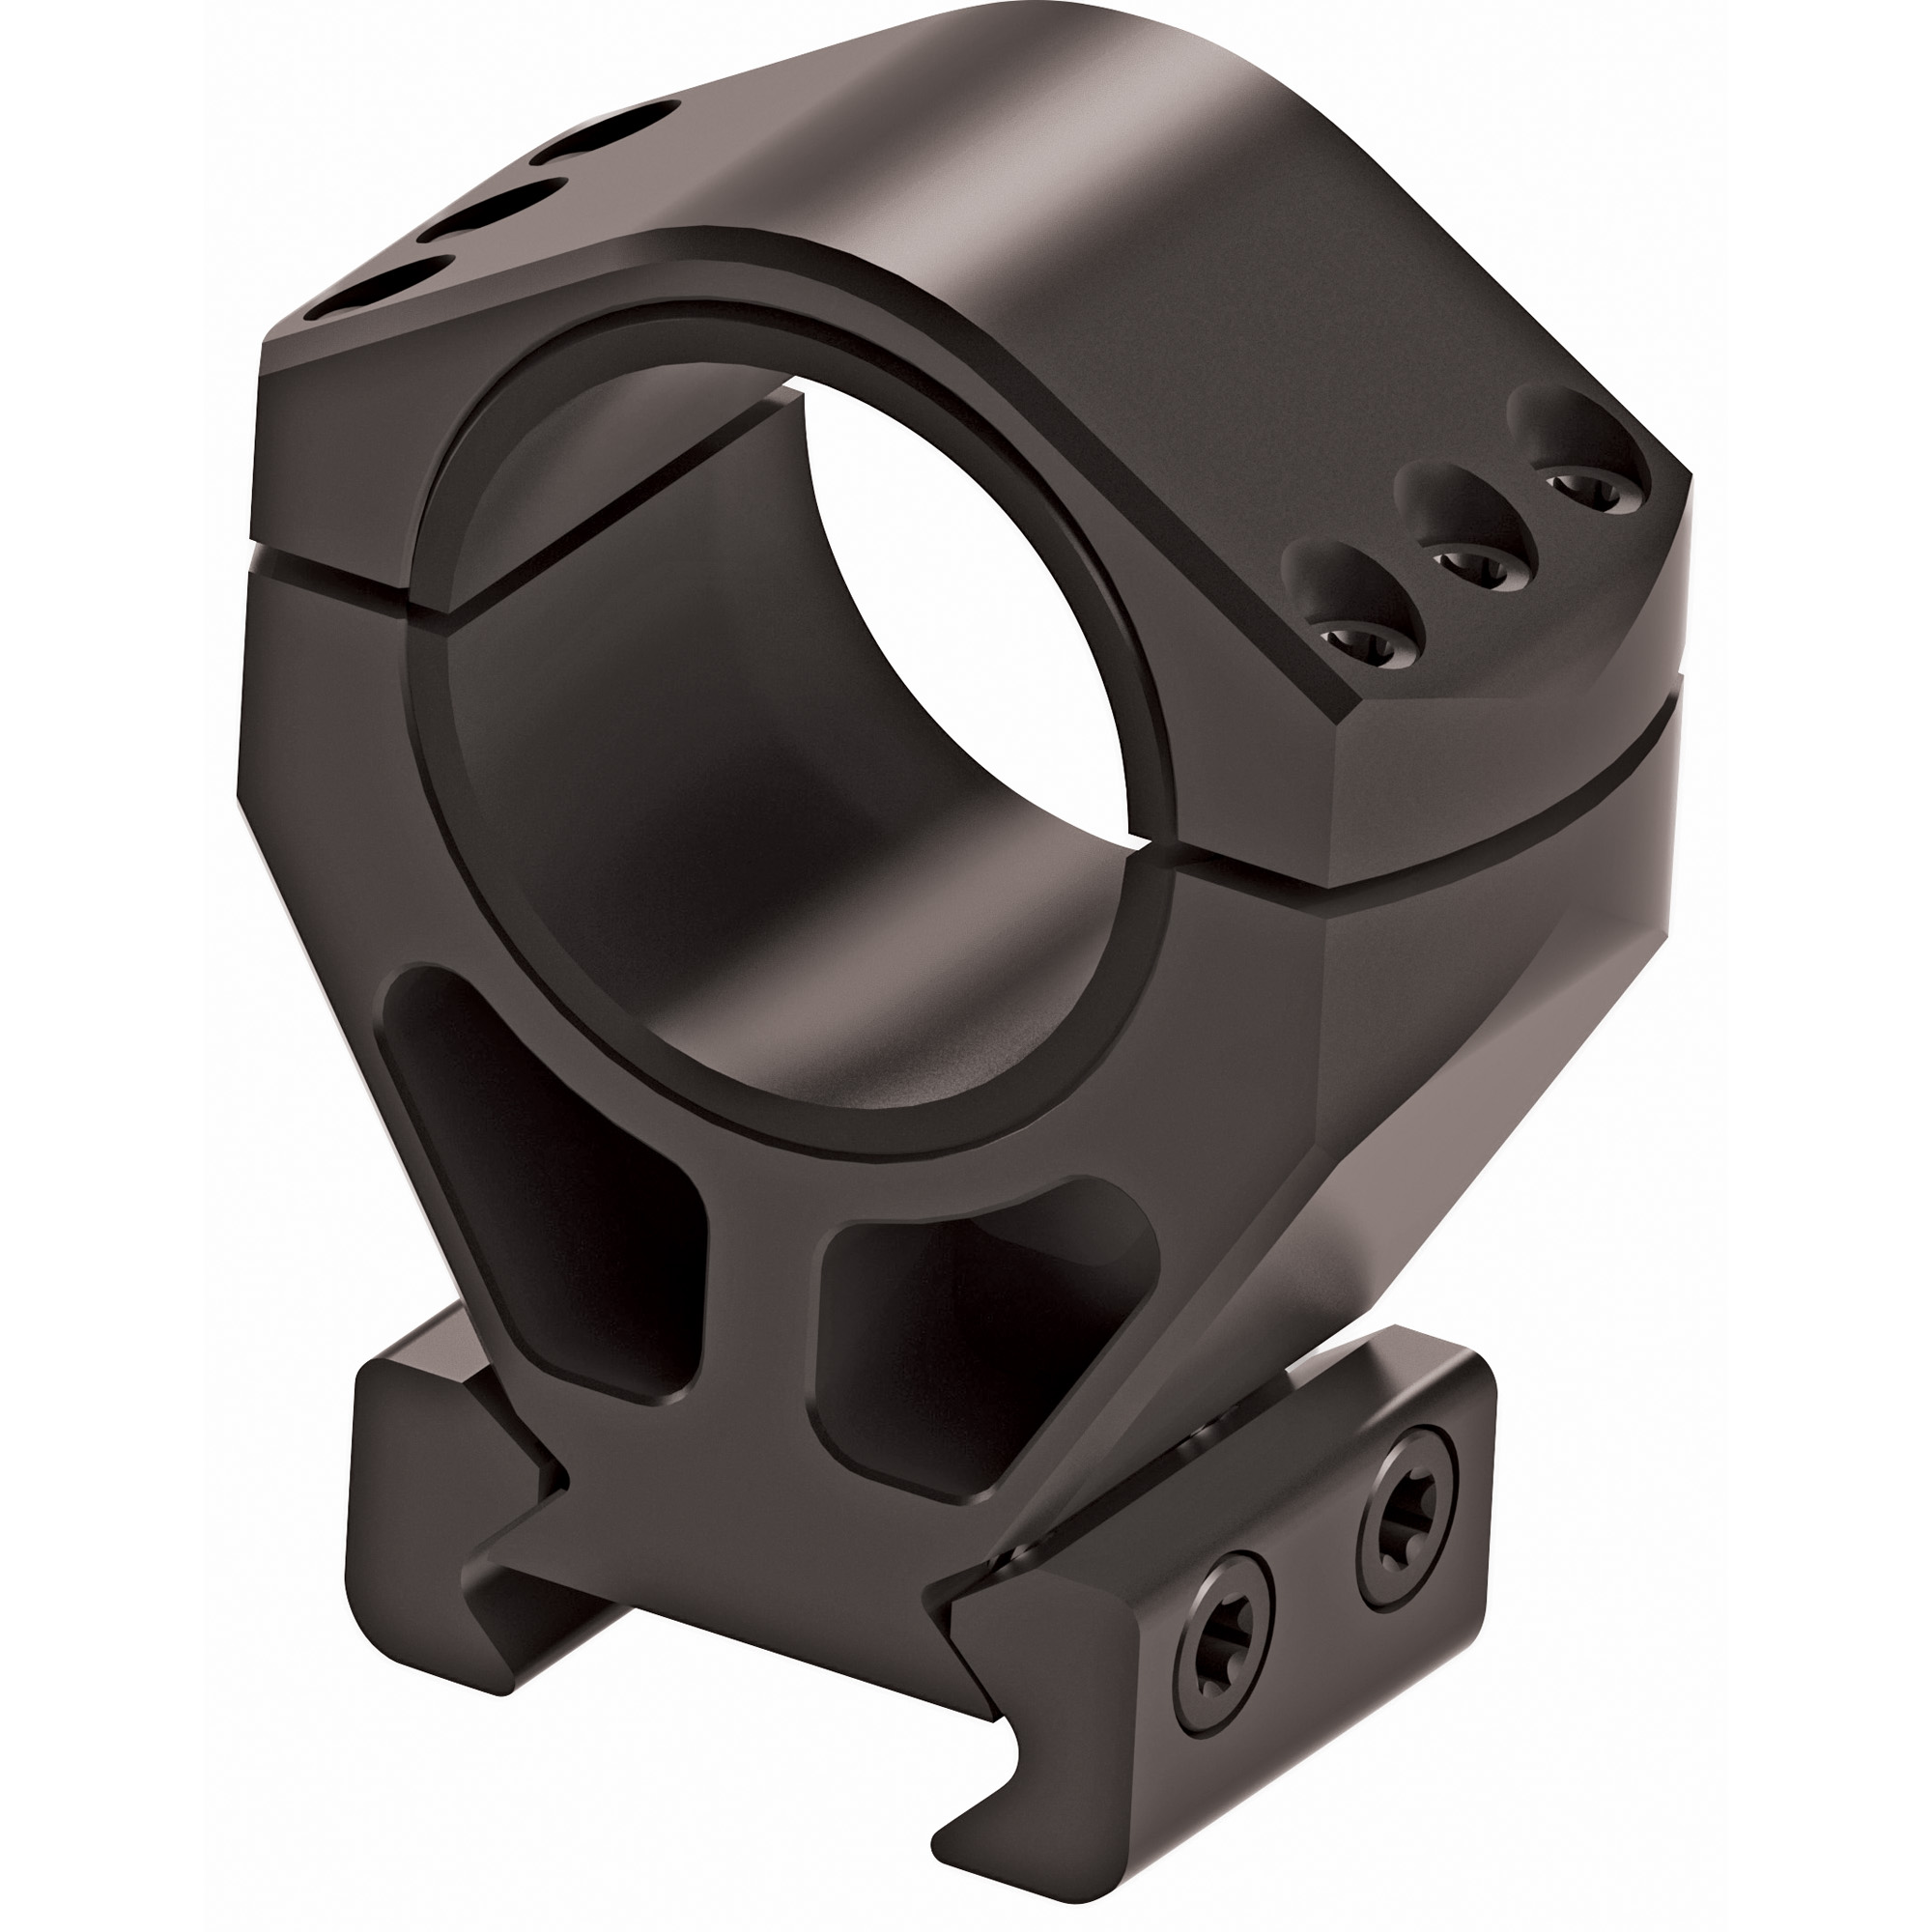 "New XTR Signature Rings were designed for the tactical shooter. They deliver plenty of holding power"" with less weight. Each ring set includes one set of the +/- 0 MOA concentric"" one set each of the +/-5 MOA and +/-10 MOA"" and two sets of the +/-20 MOA. With these inserts"" it is possible to make 0"" 5"" 10"" 15"" 20"" 25"" 30 or 40 MOA of cant in the scope mount."